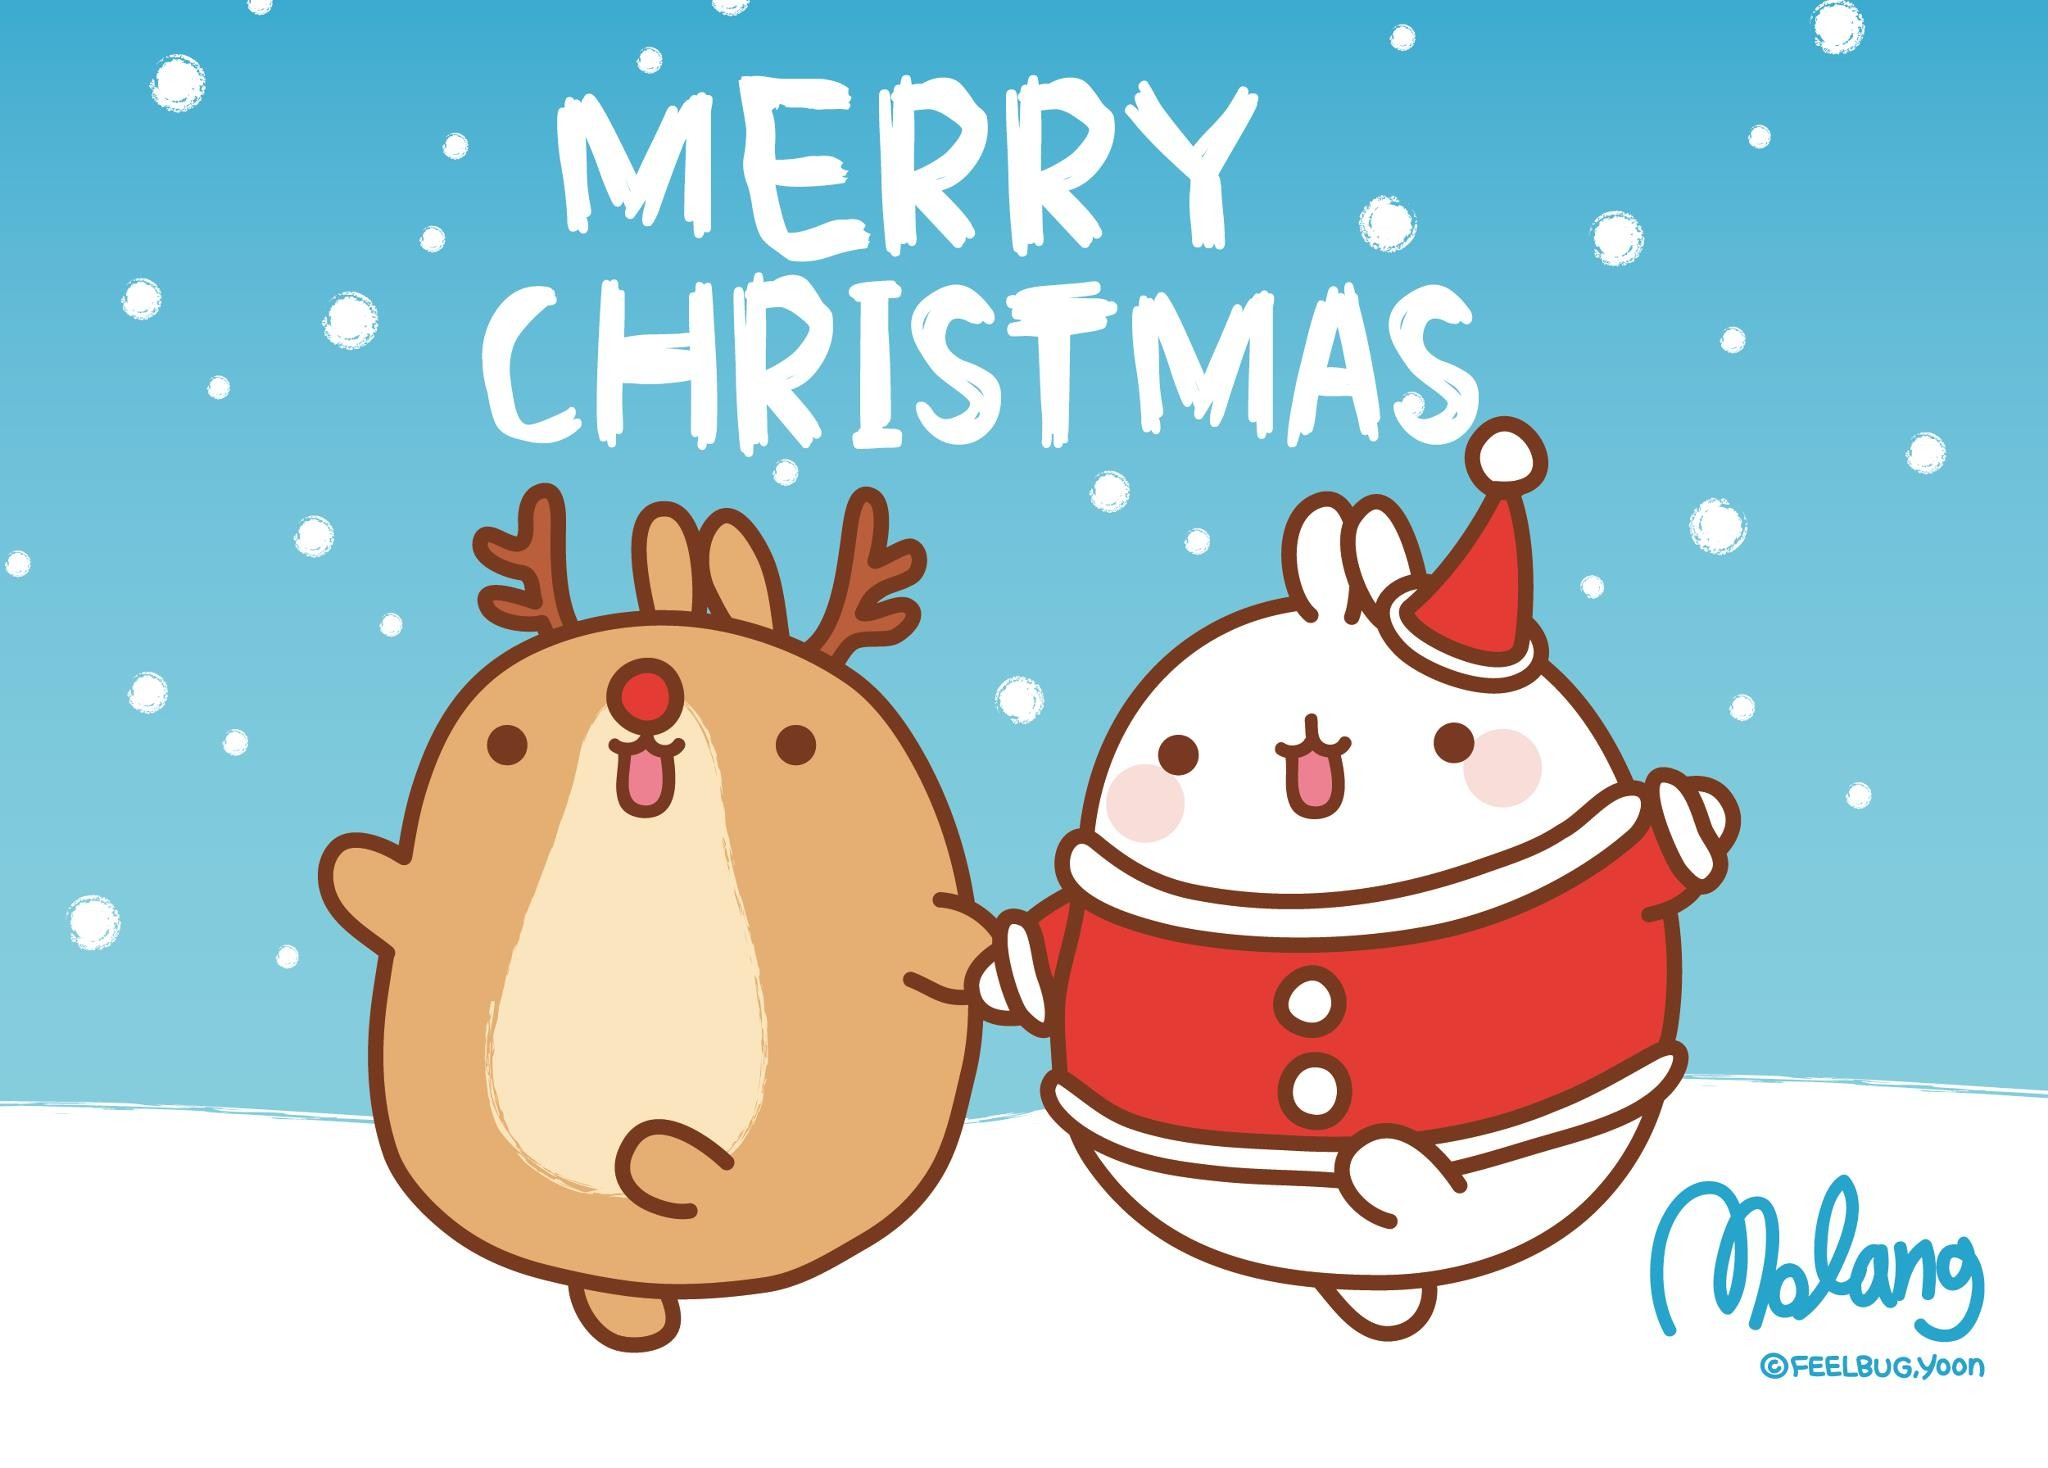 2048x1468 San-X Molang Christmas Desktop Wallpapers - Here are 3 super cute Molang Desktop  Backgrounds